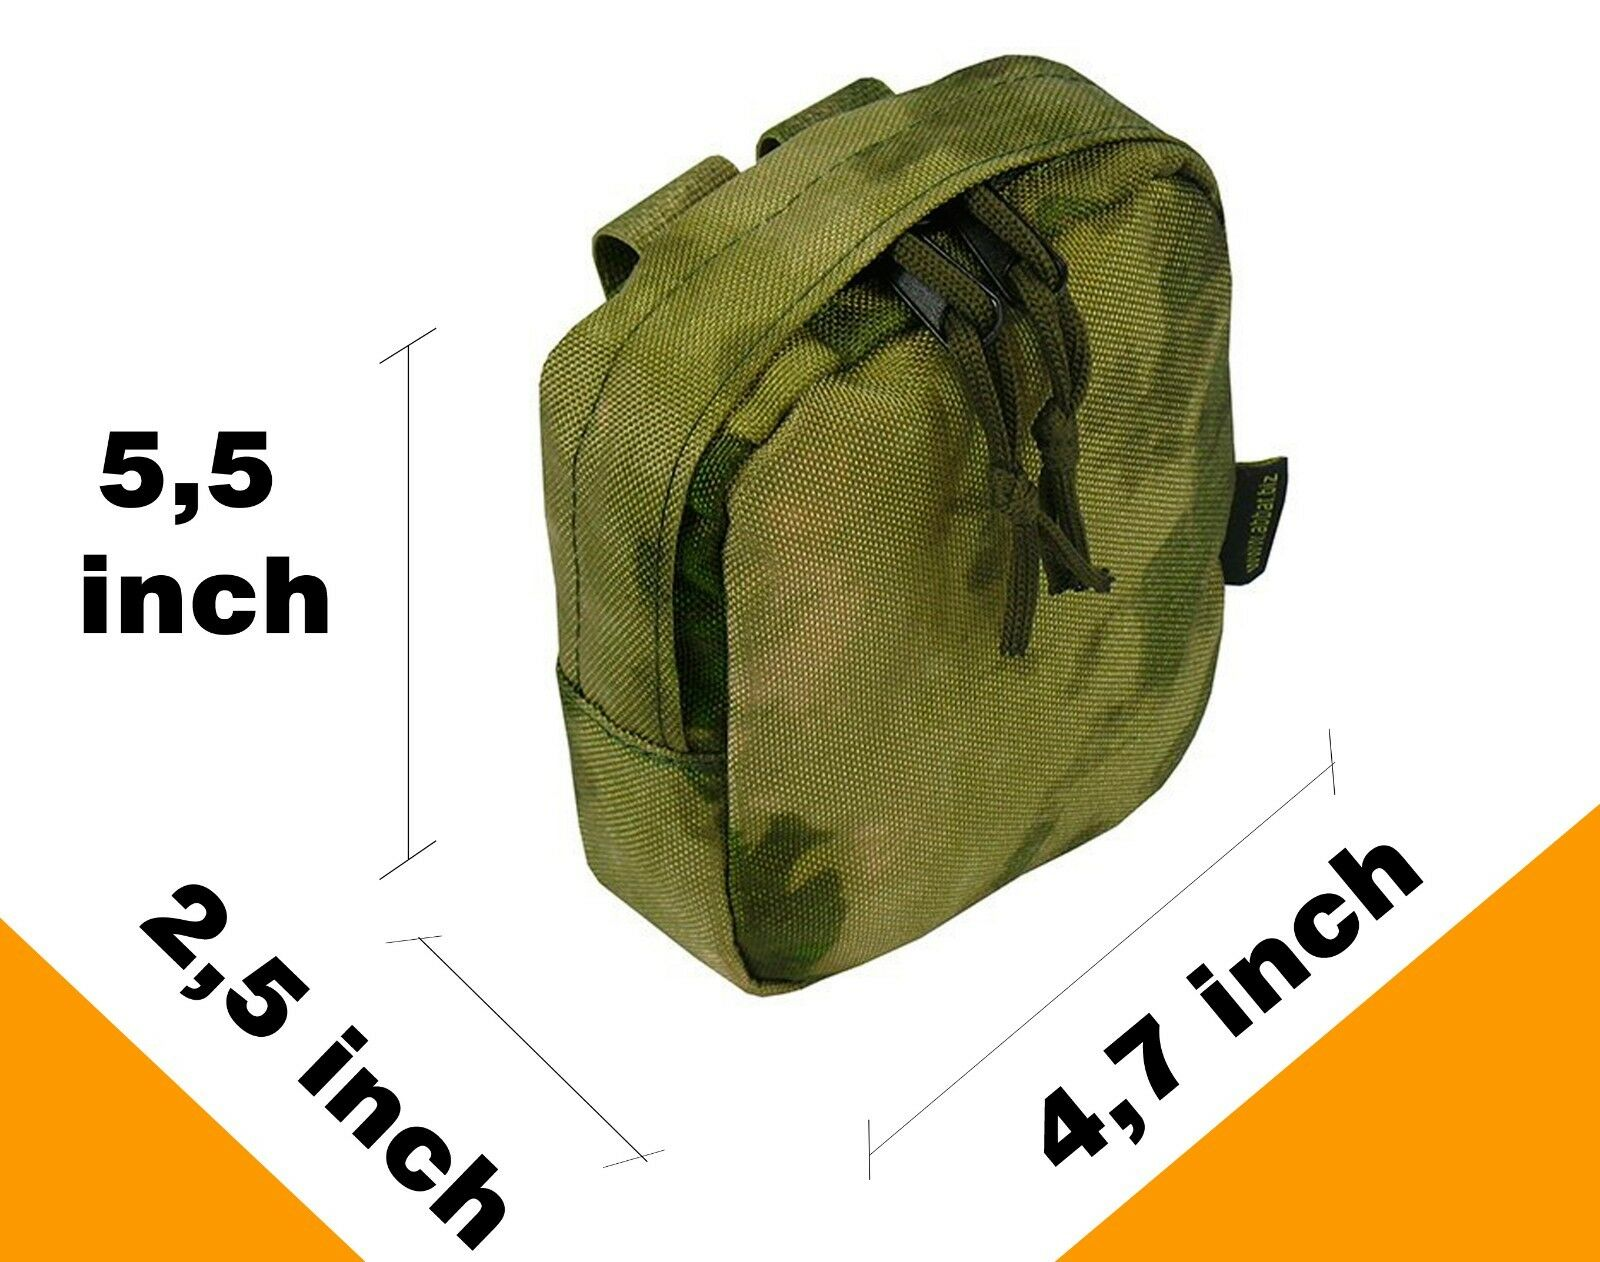 Molle Paintball Airsoft Modular Pecho plataforma Chaleco Chaleco Chaleco milsim Kit № 53 Atacs A-tacs Fg a70f09